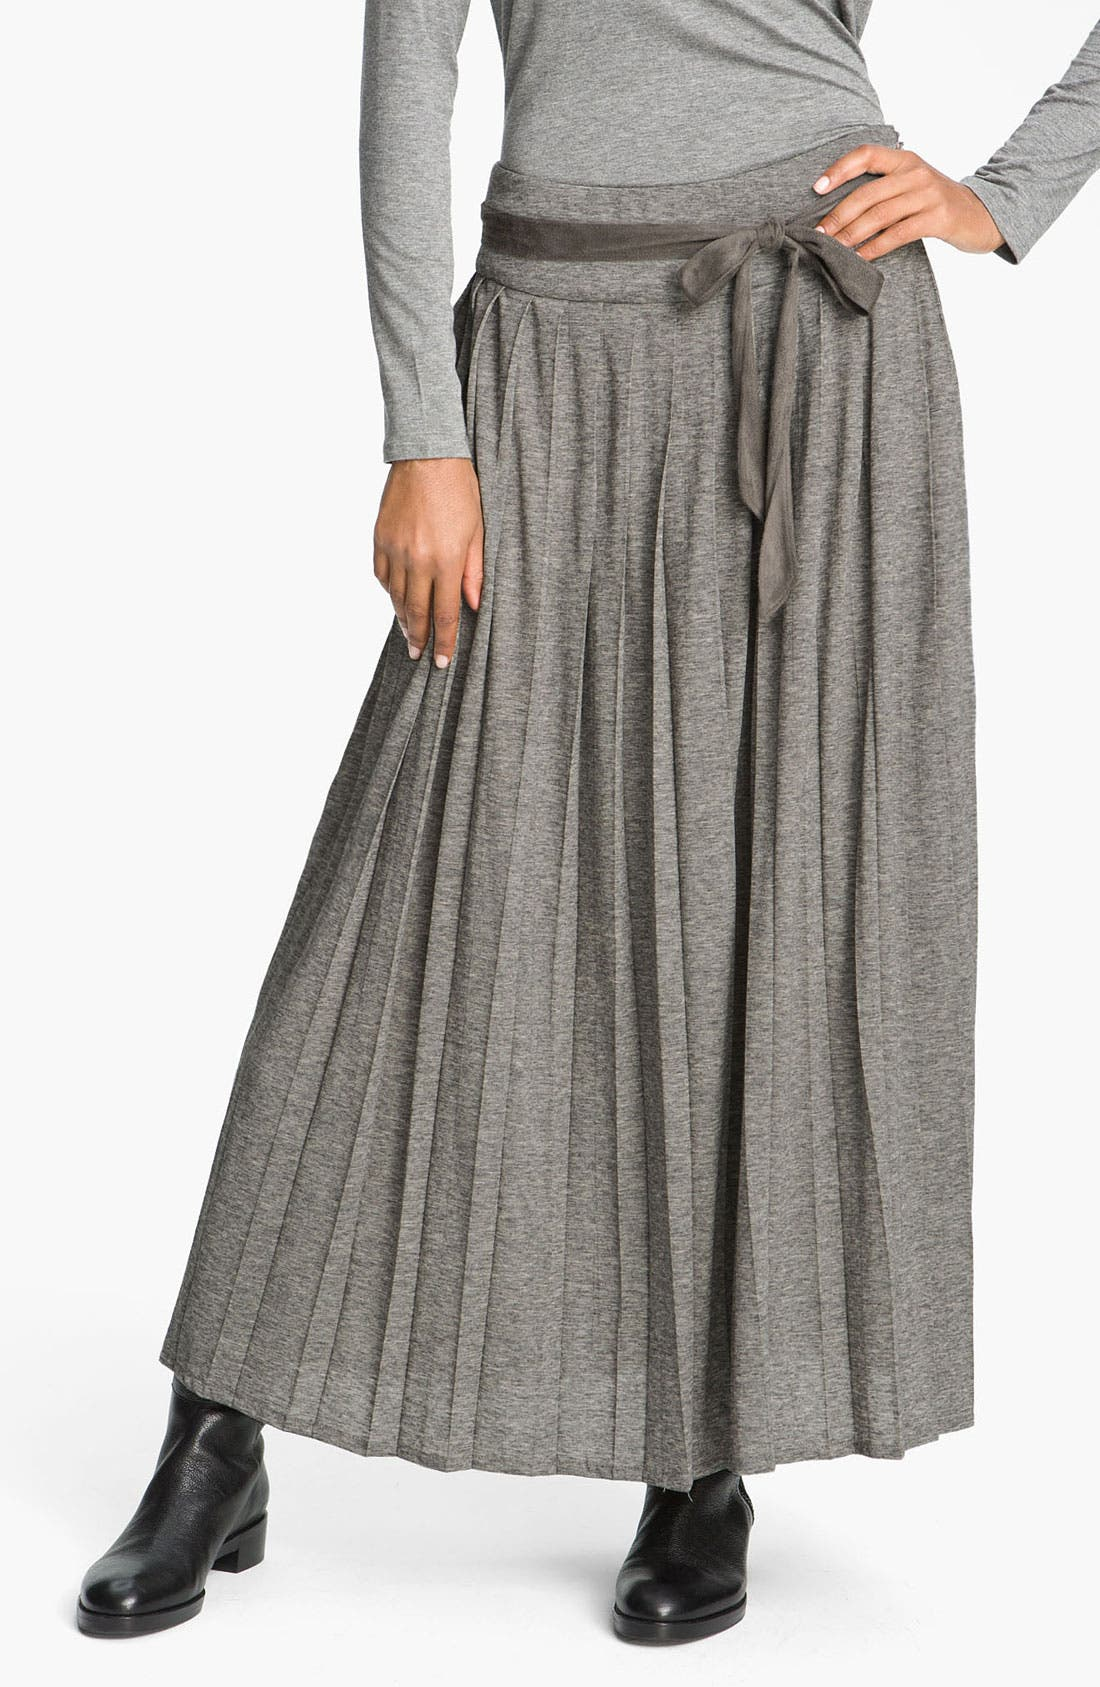 Main Image - Weekend Max Mara 'Amburgo' Jersey Skirt